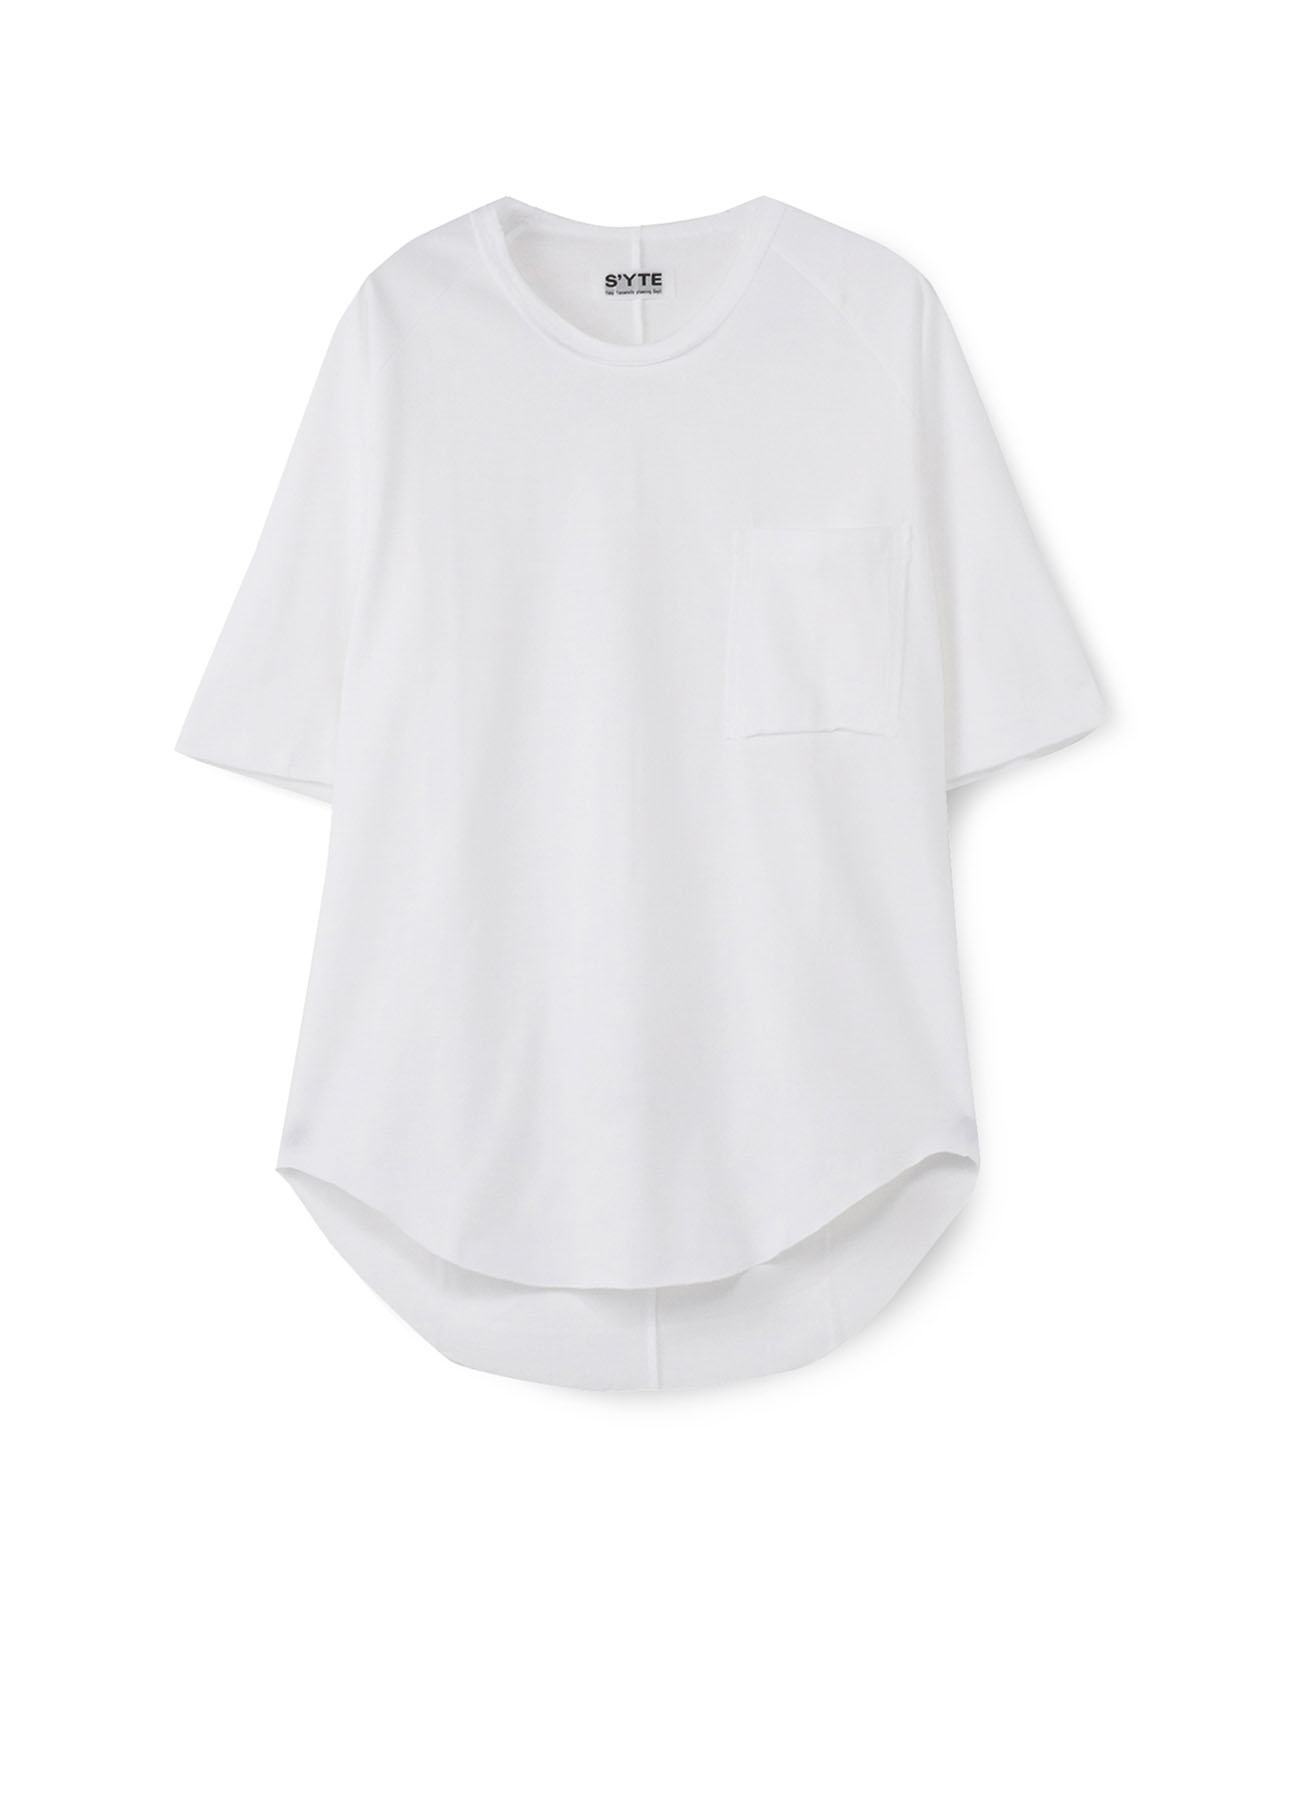 40/2 Jersey Raglan Big Pocket Crew neck T